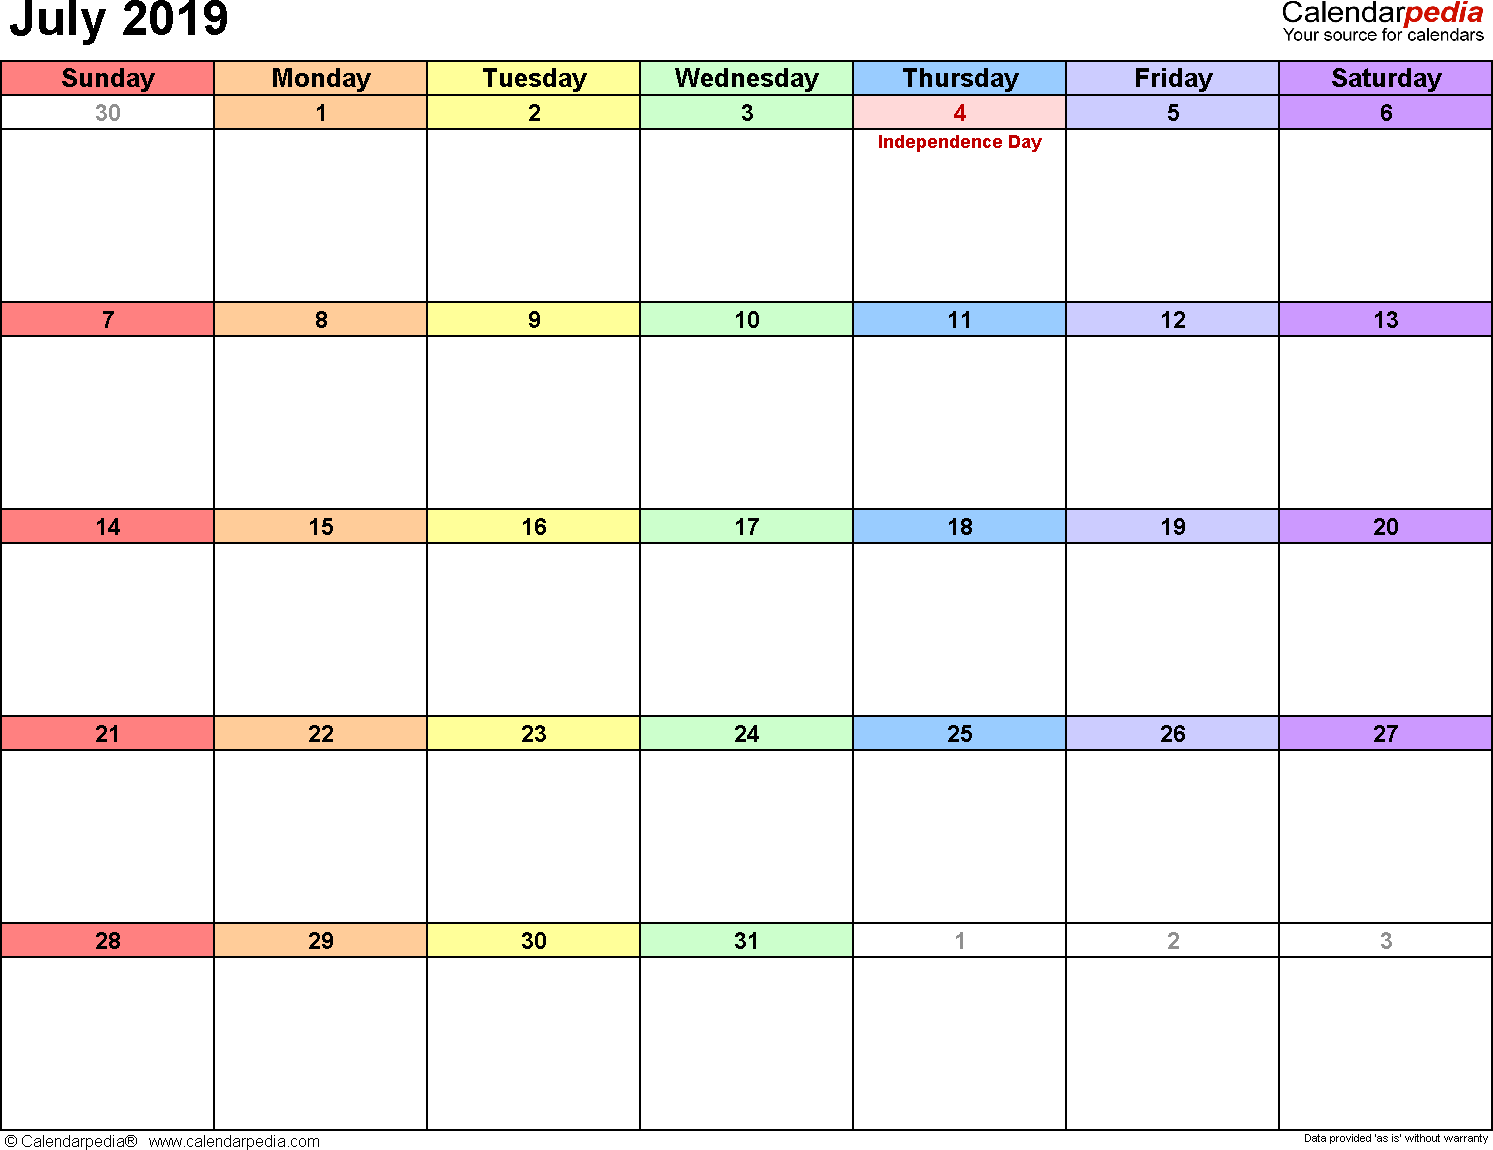 Calendar For July 2019 July 2019 Calendars for Word, Excel & PDF